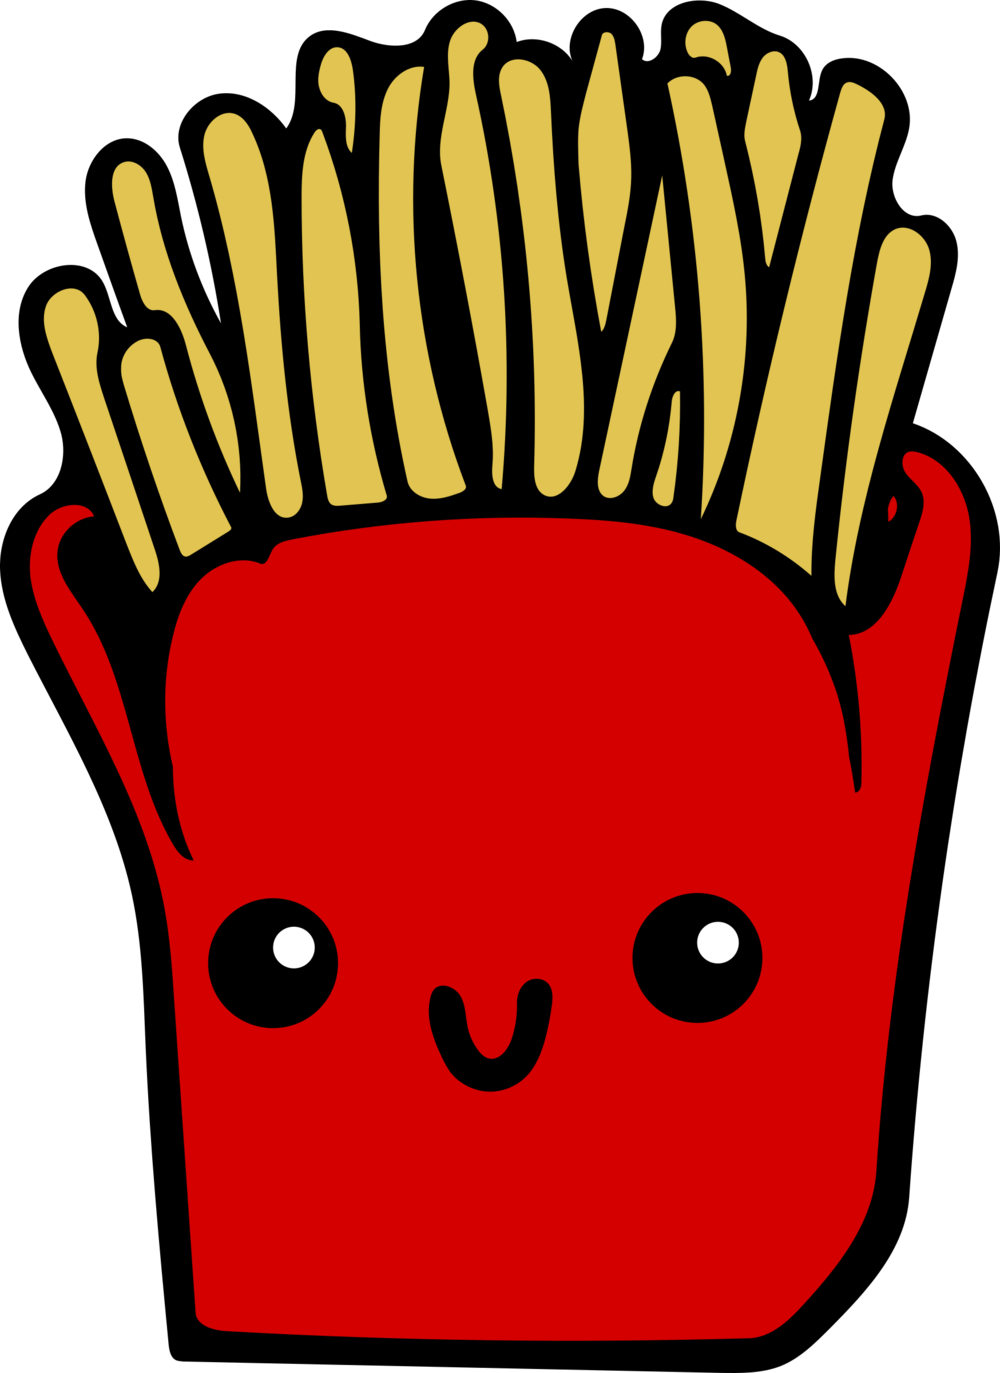 111-fries-j4p4n.png